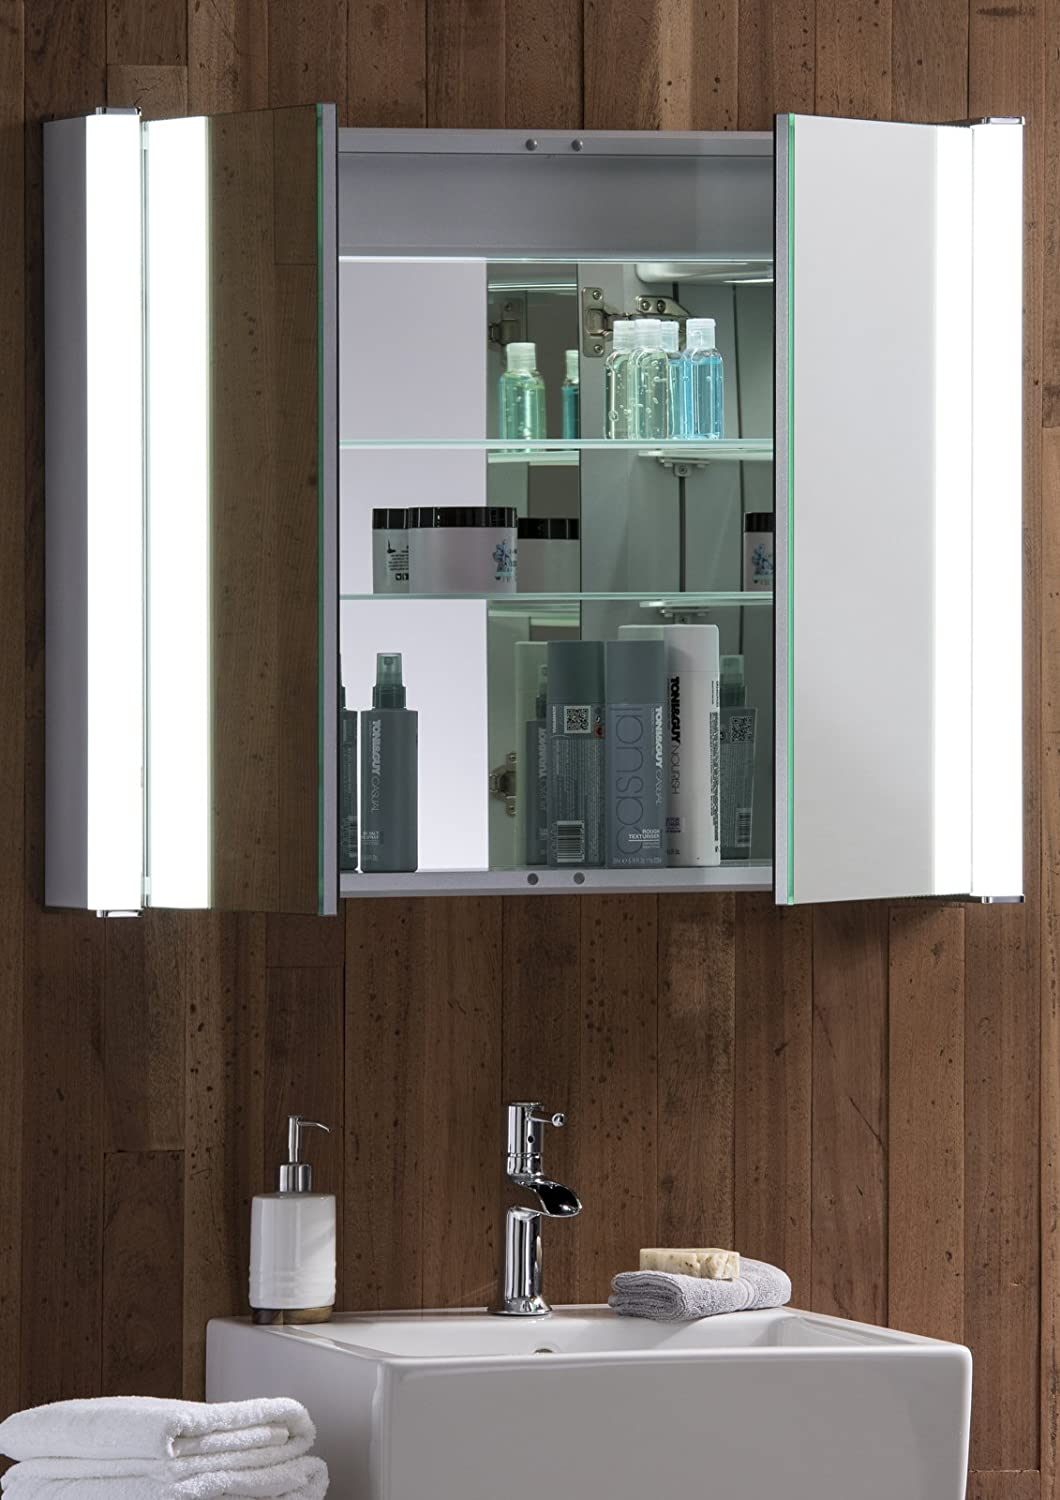 LED Illuminated Bathroom Mirror Cabinet With Demister Heat Pad Shaver And Sensor Switch Lights 65cmH X 80cmW 16cmD C13 Amazoncouk Kitchen